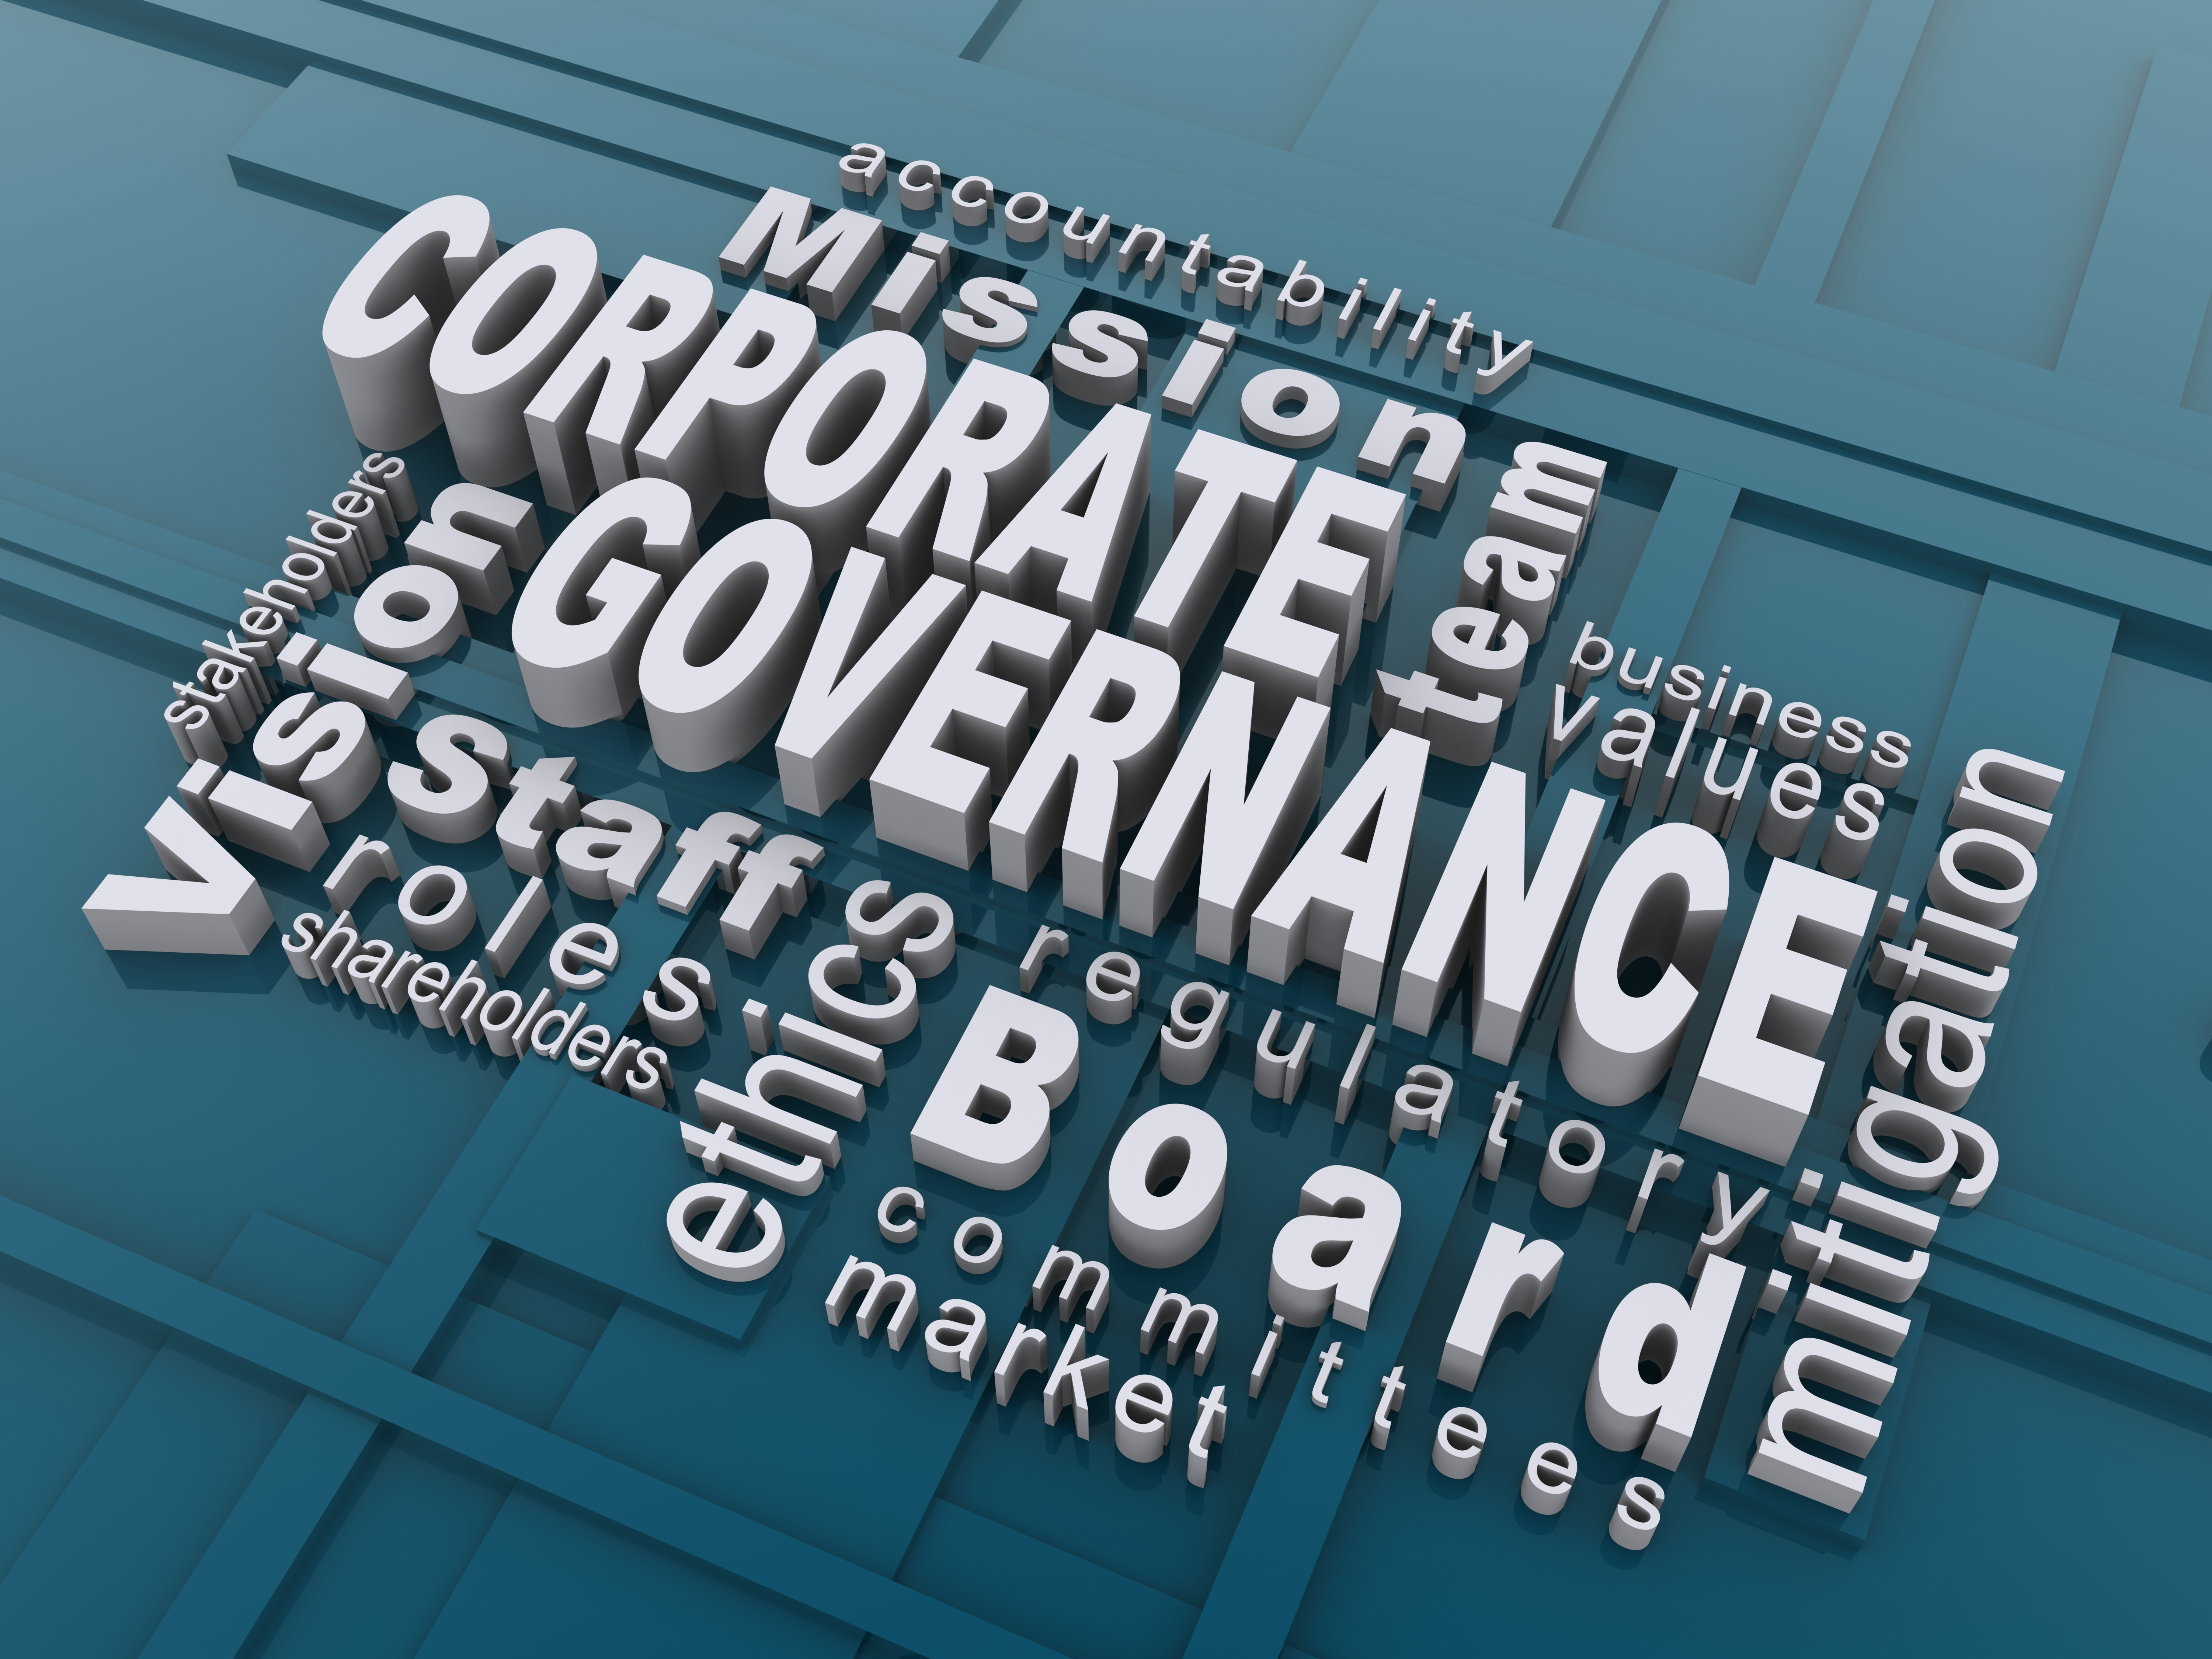 Corporate Governance Issues & Challenges | Bizfluent